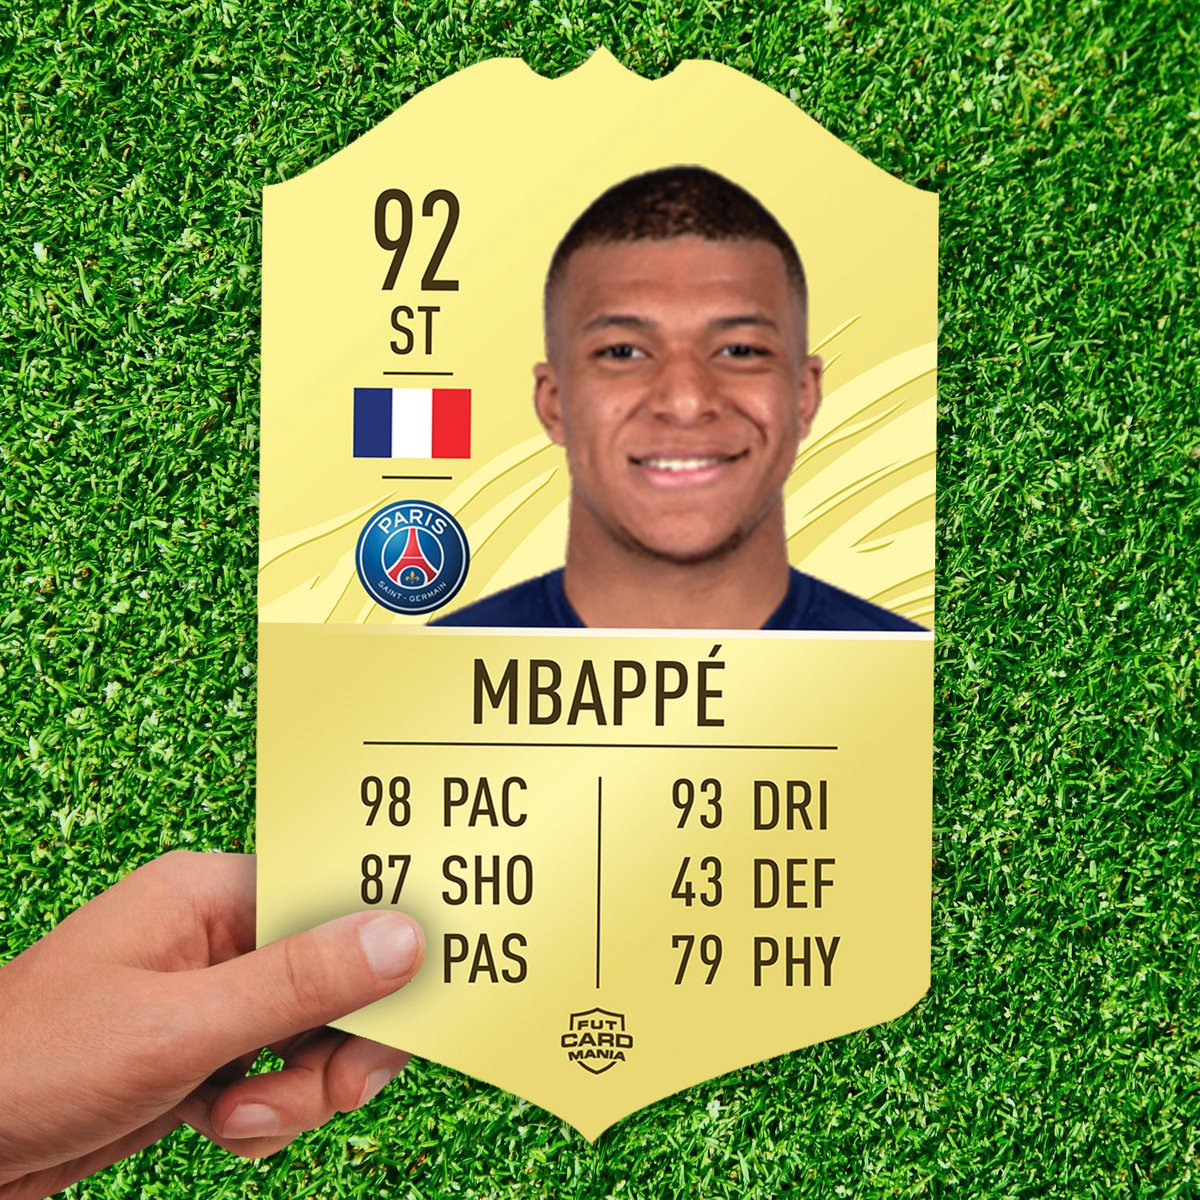 ⚽️GIVEAWAY⚽️  We're giving away this 2021 Mbappe card🔥  To Enter ❤️ Like This Tweet 🔄 RT This Tweet ✅ Follow @FUTCardMania   Winner Announced 22nd August💥 https://t.co/6IBZ95dPy2